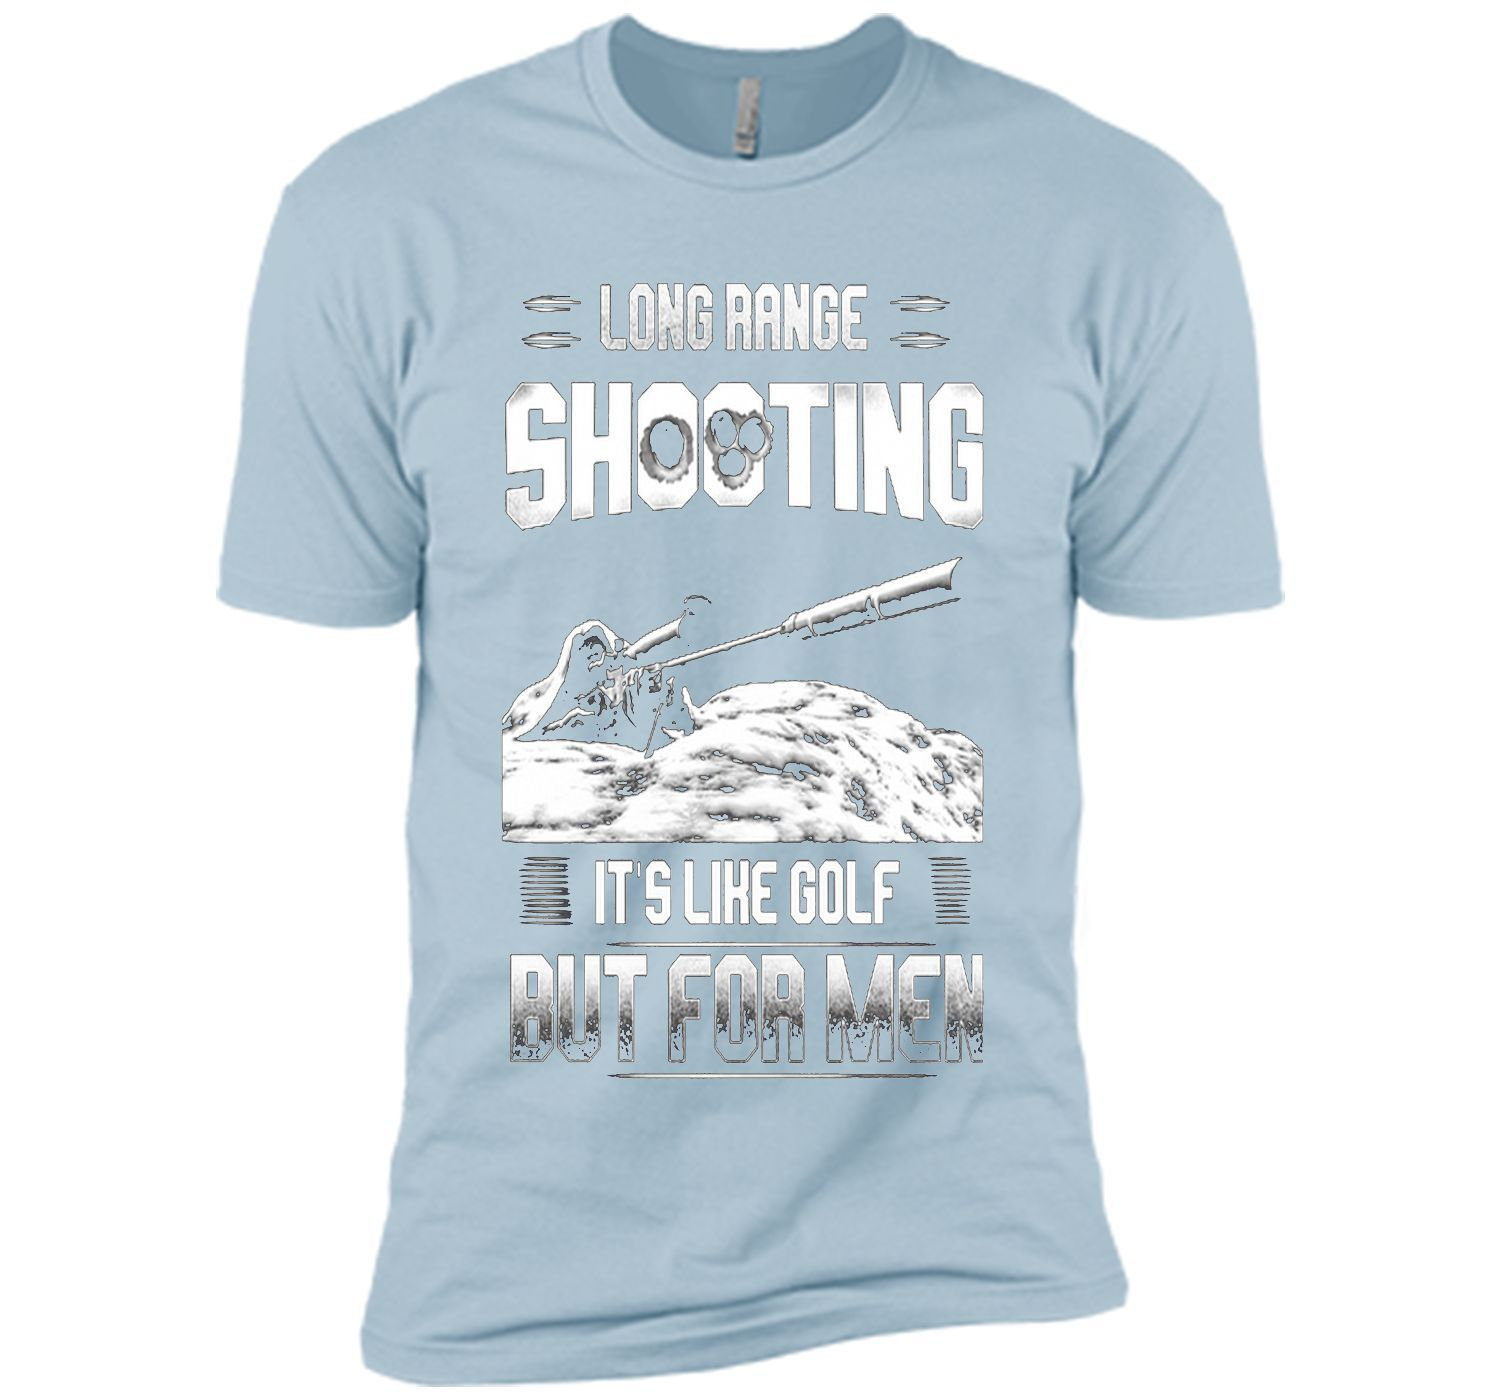 0caf3548d Long range shooting it's like golf but for men | Products | T shirt ...